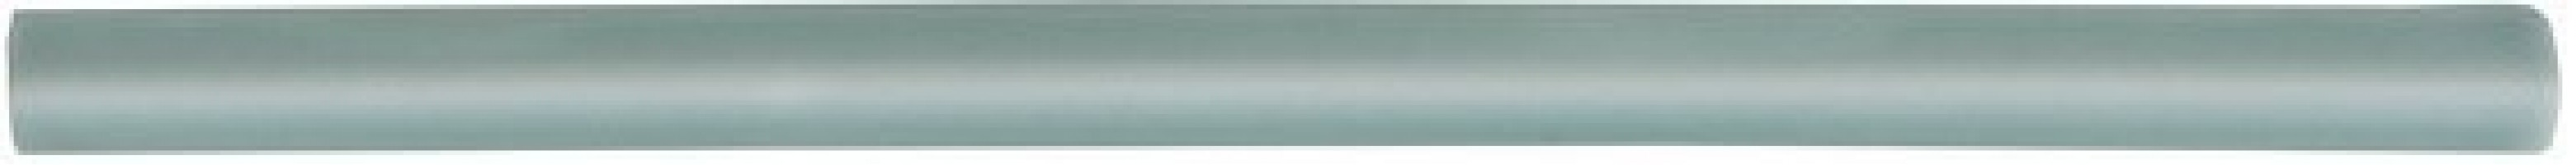 Бордюр Neri ADNE5635 Bullnose Trim Sea Green 0.85x15 Adex